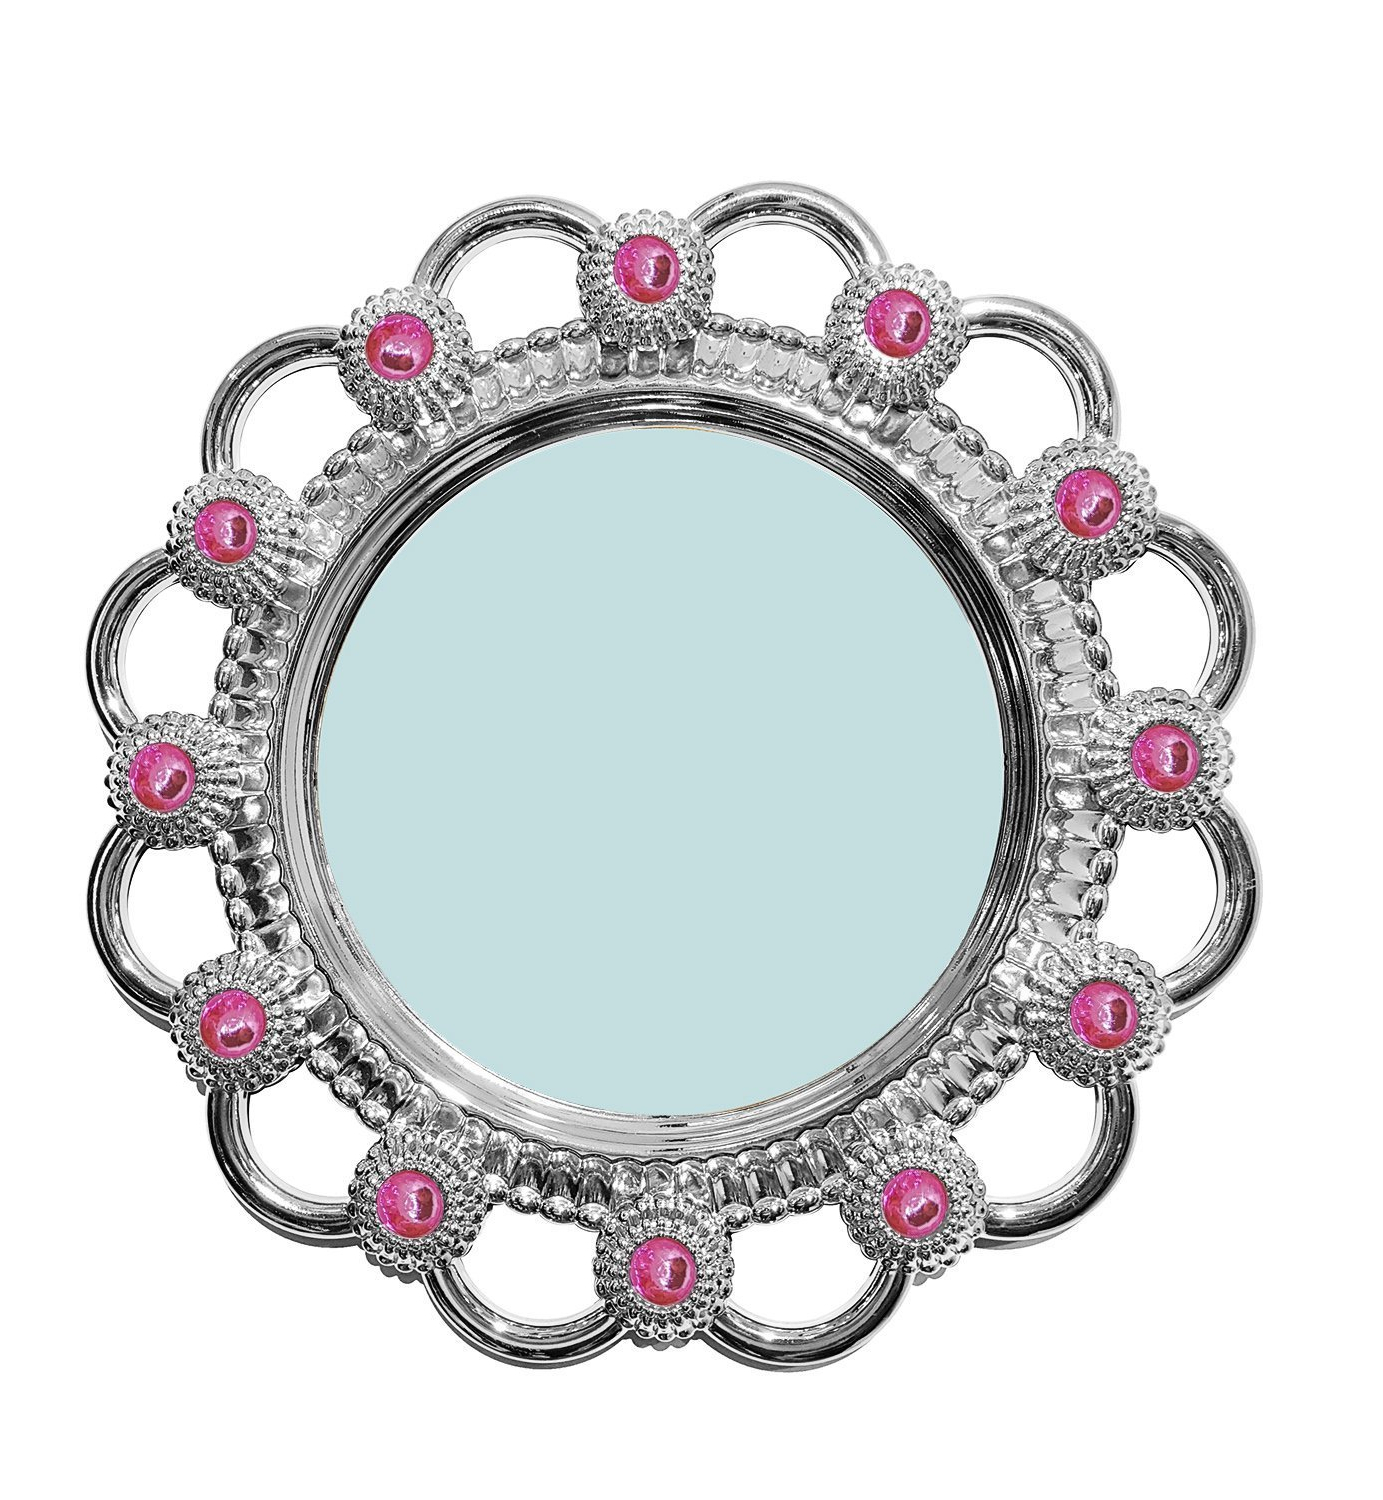 Fancy Bathroom Wall Mirrors Inside Widely Used Buy Baal Wall Mirror For Bedroom Fancy Wall Mirror For Home Mirror (View 15 of 20)